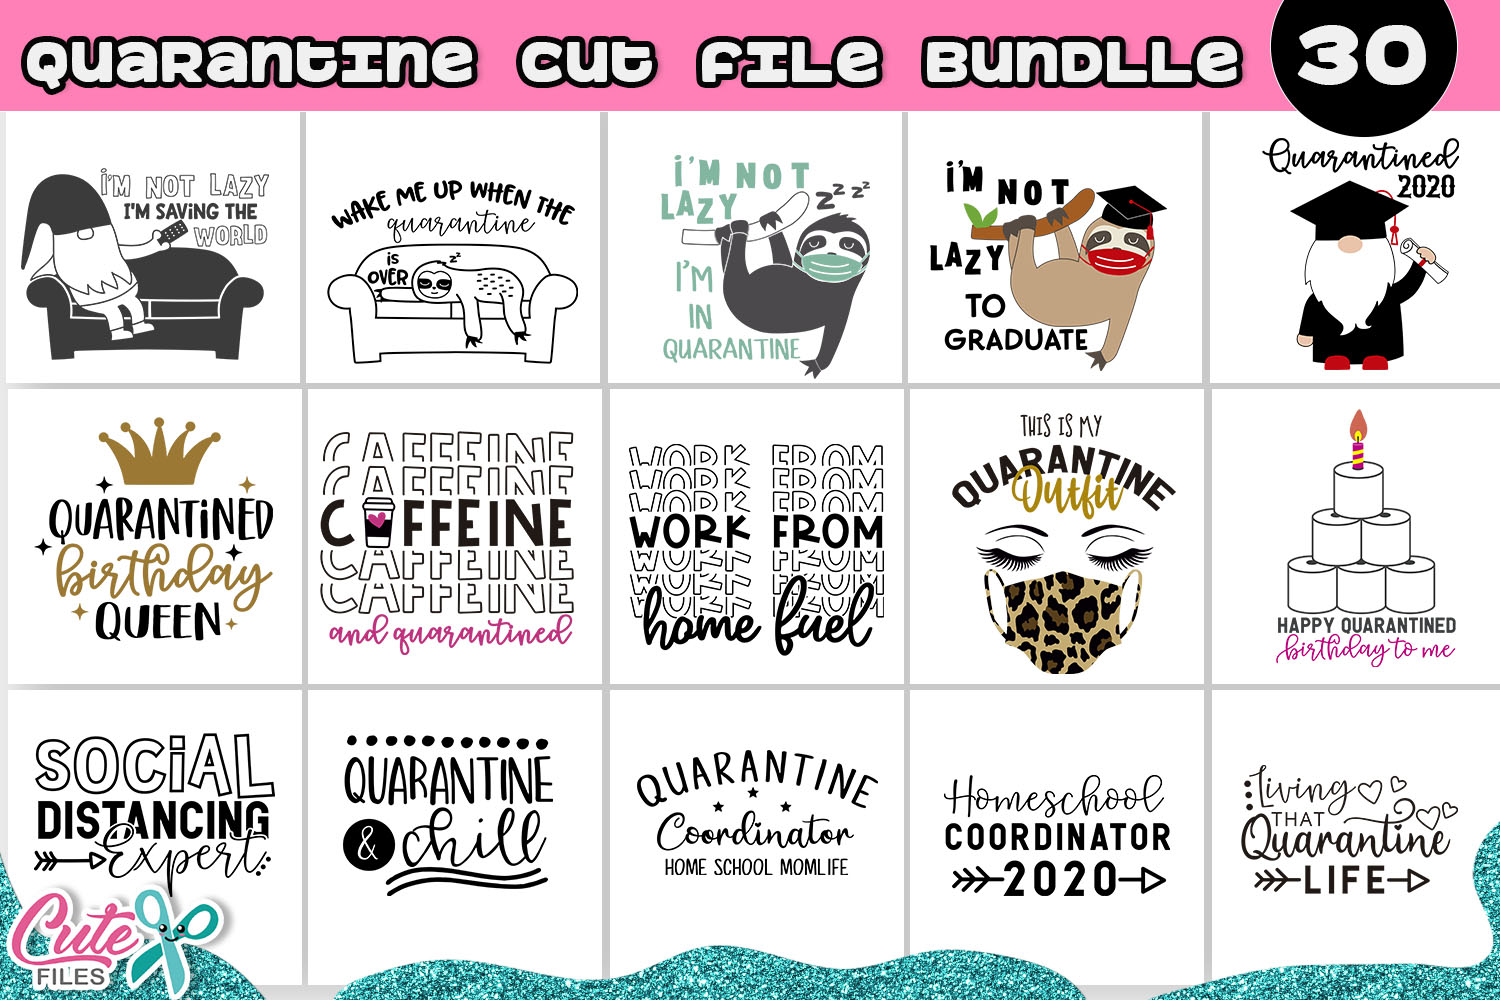 Download Free The Quarantine Bundle 30 Designs Graphic By Cute Files for Cricut Explore, Silhouette and other cutting machines.